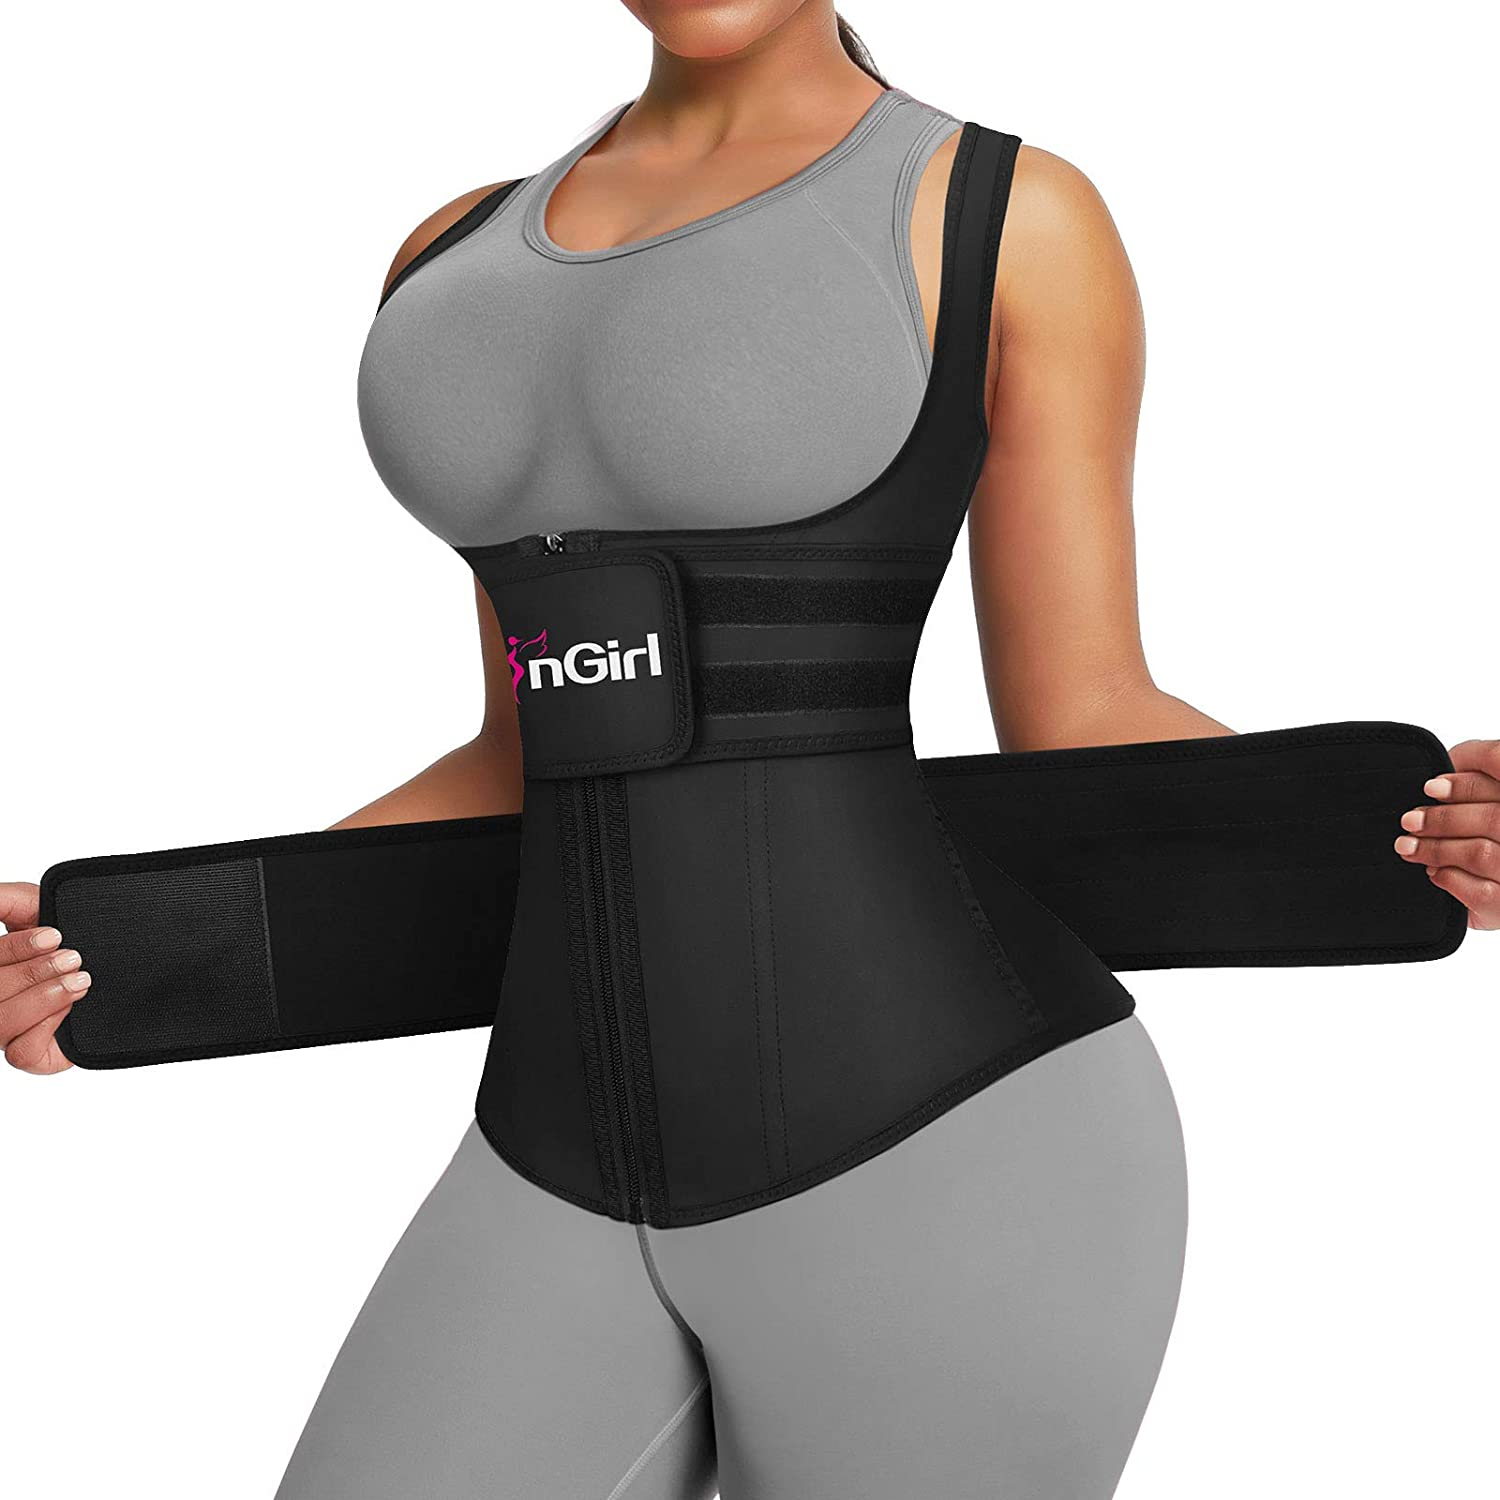 FeelinGirl Women's Latex Underbust Training Cincher Workout Waist Trainer Corset